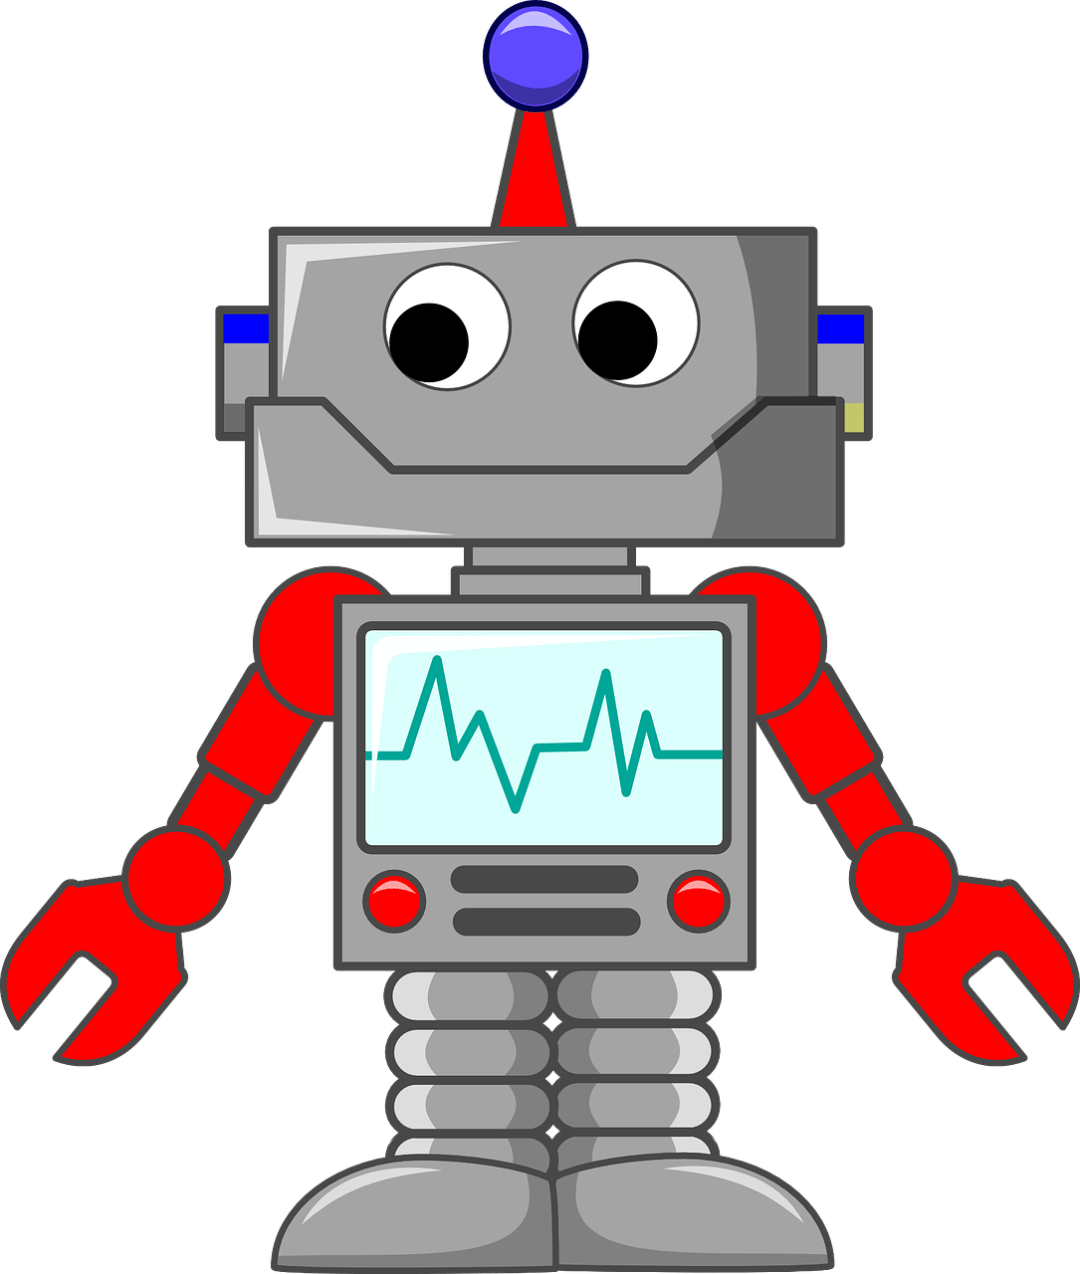 Thank you for contacting me- My funny Robot